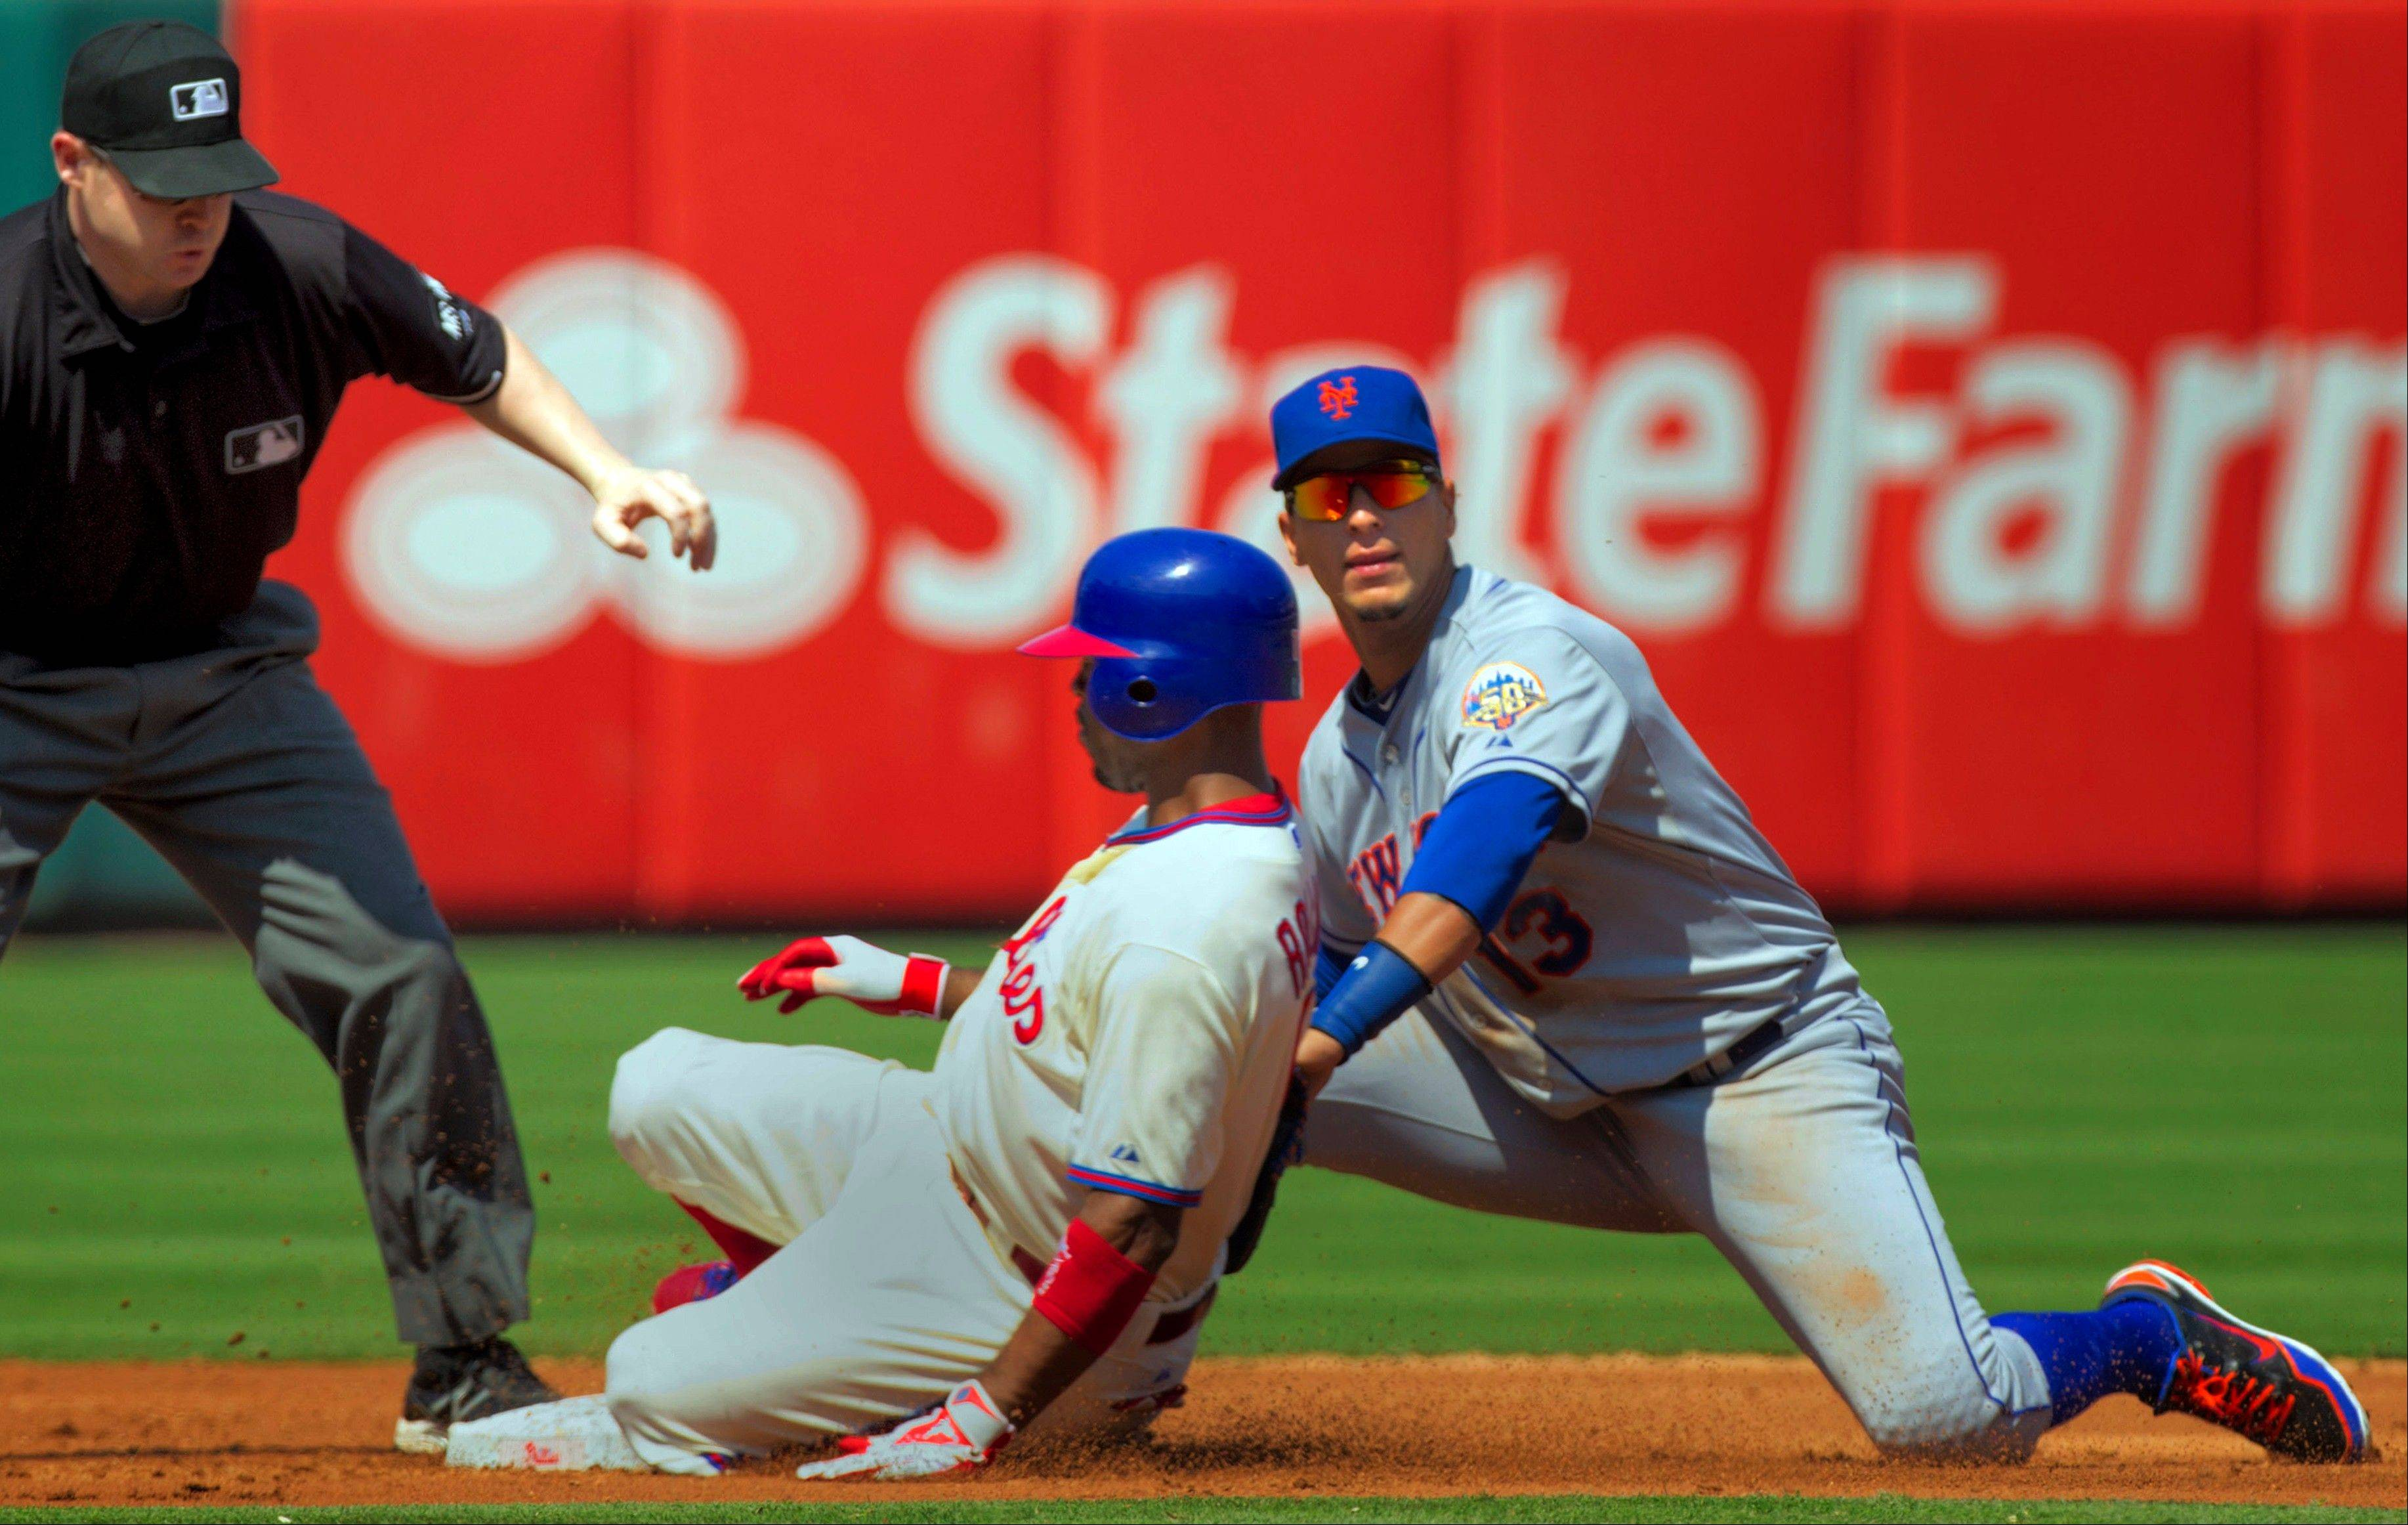 The Phillies' Jimmy Rollins safely slides into second for a double past New York Mets shortstop Ronny Cedeno during the third inning Thursday in Philadelphia. Rollins was benched later in the game.